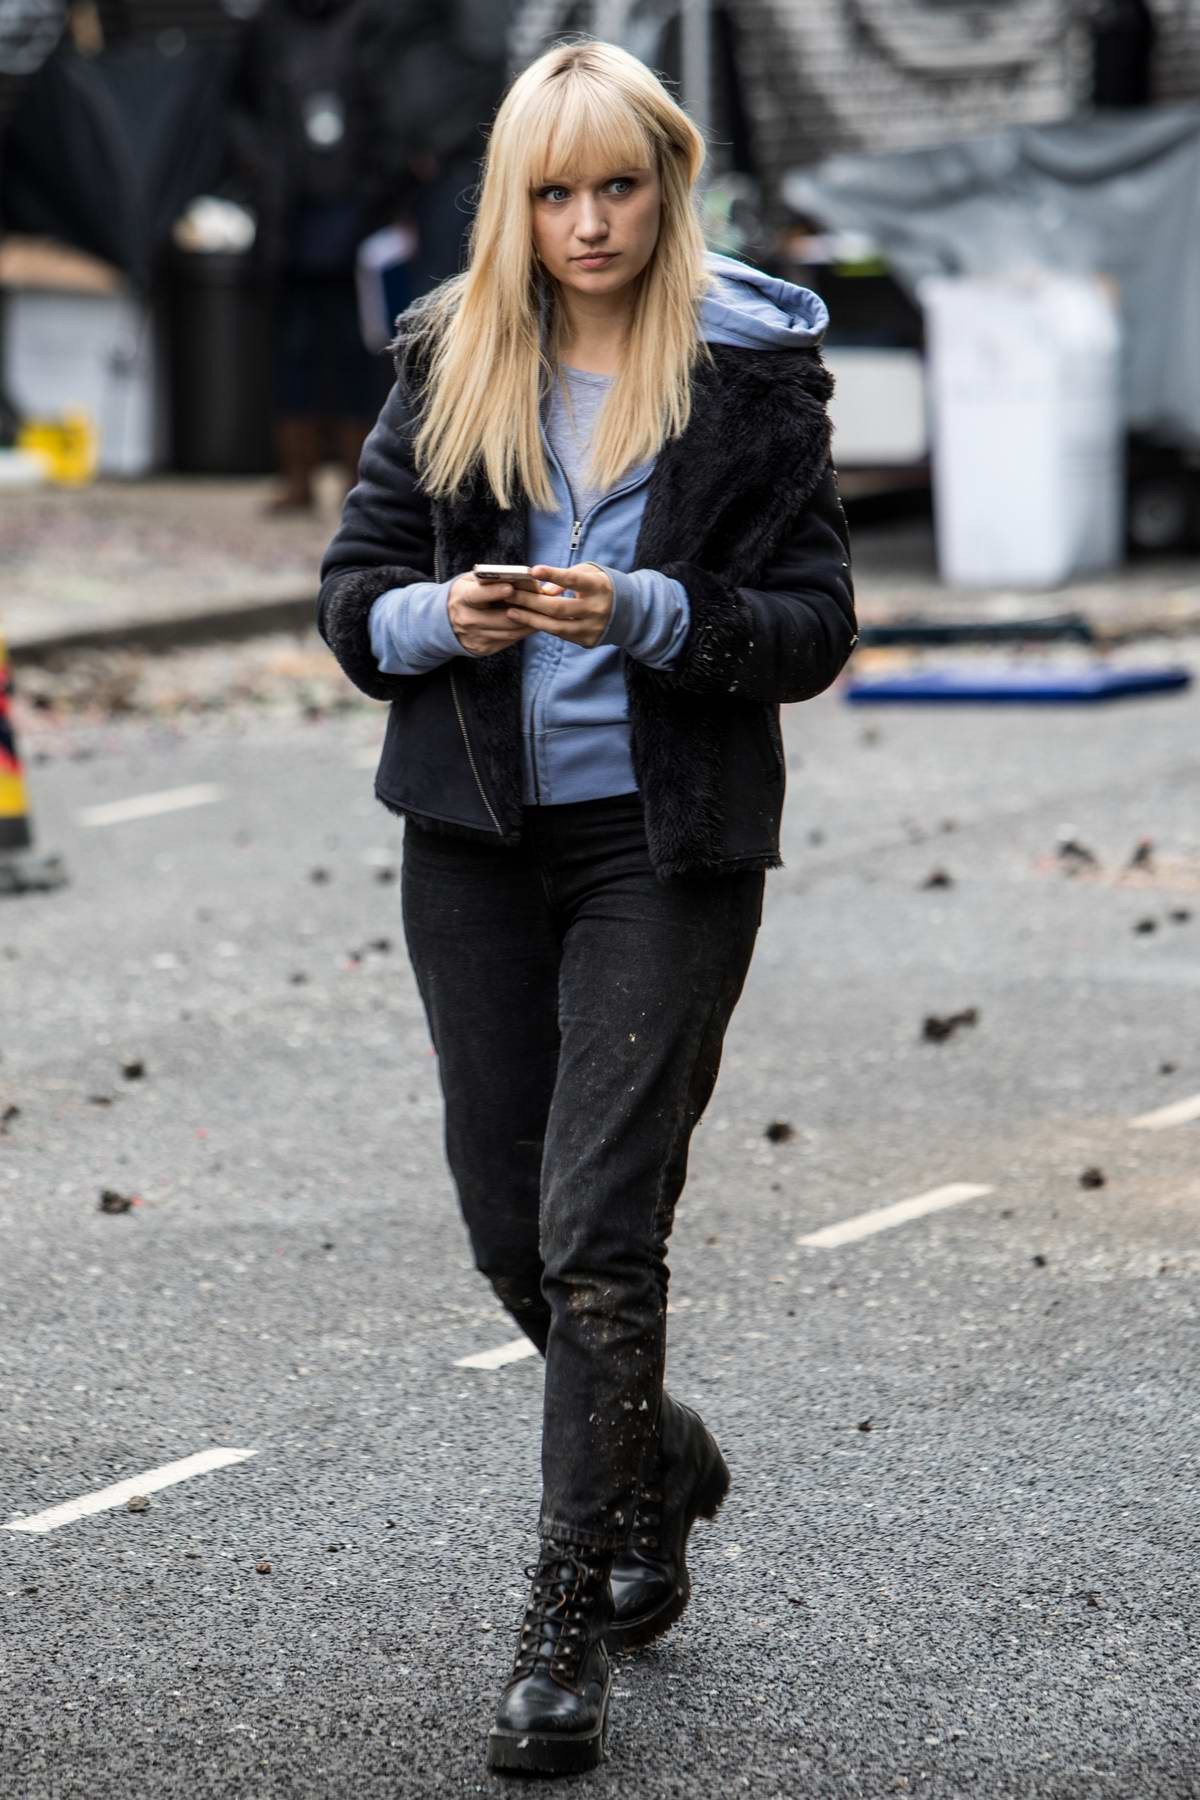 Emily Berrington filming a scene for the TV series Human in London